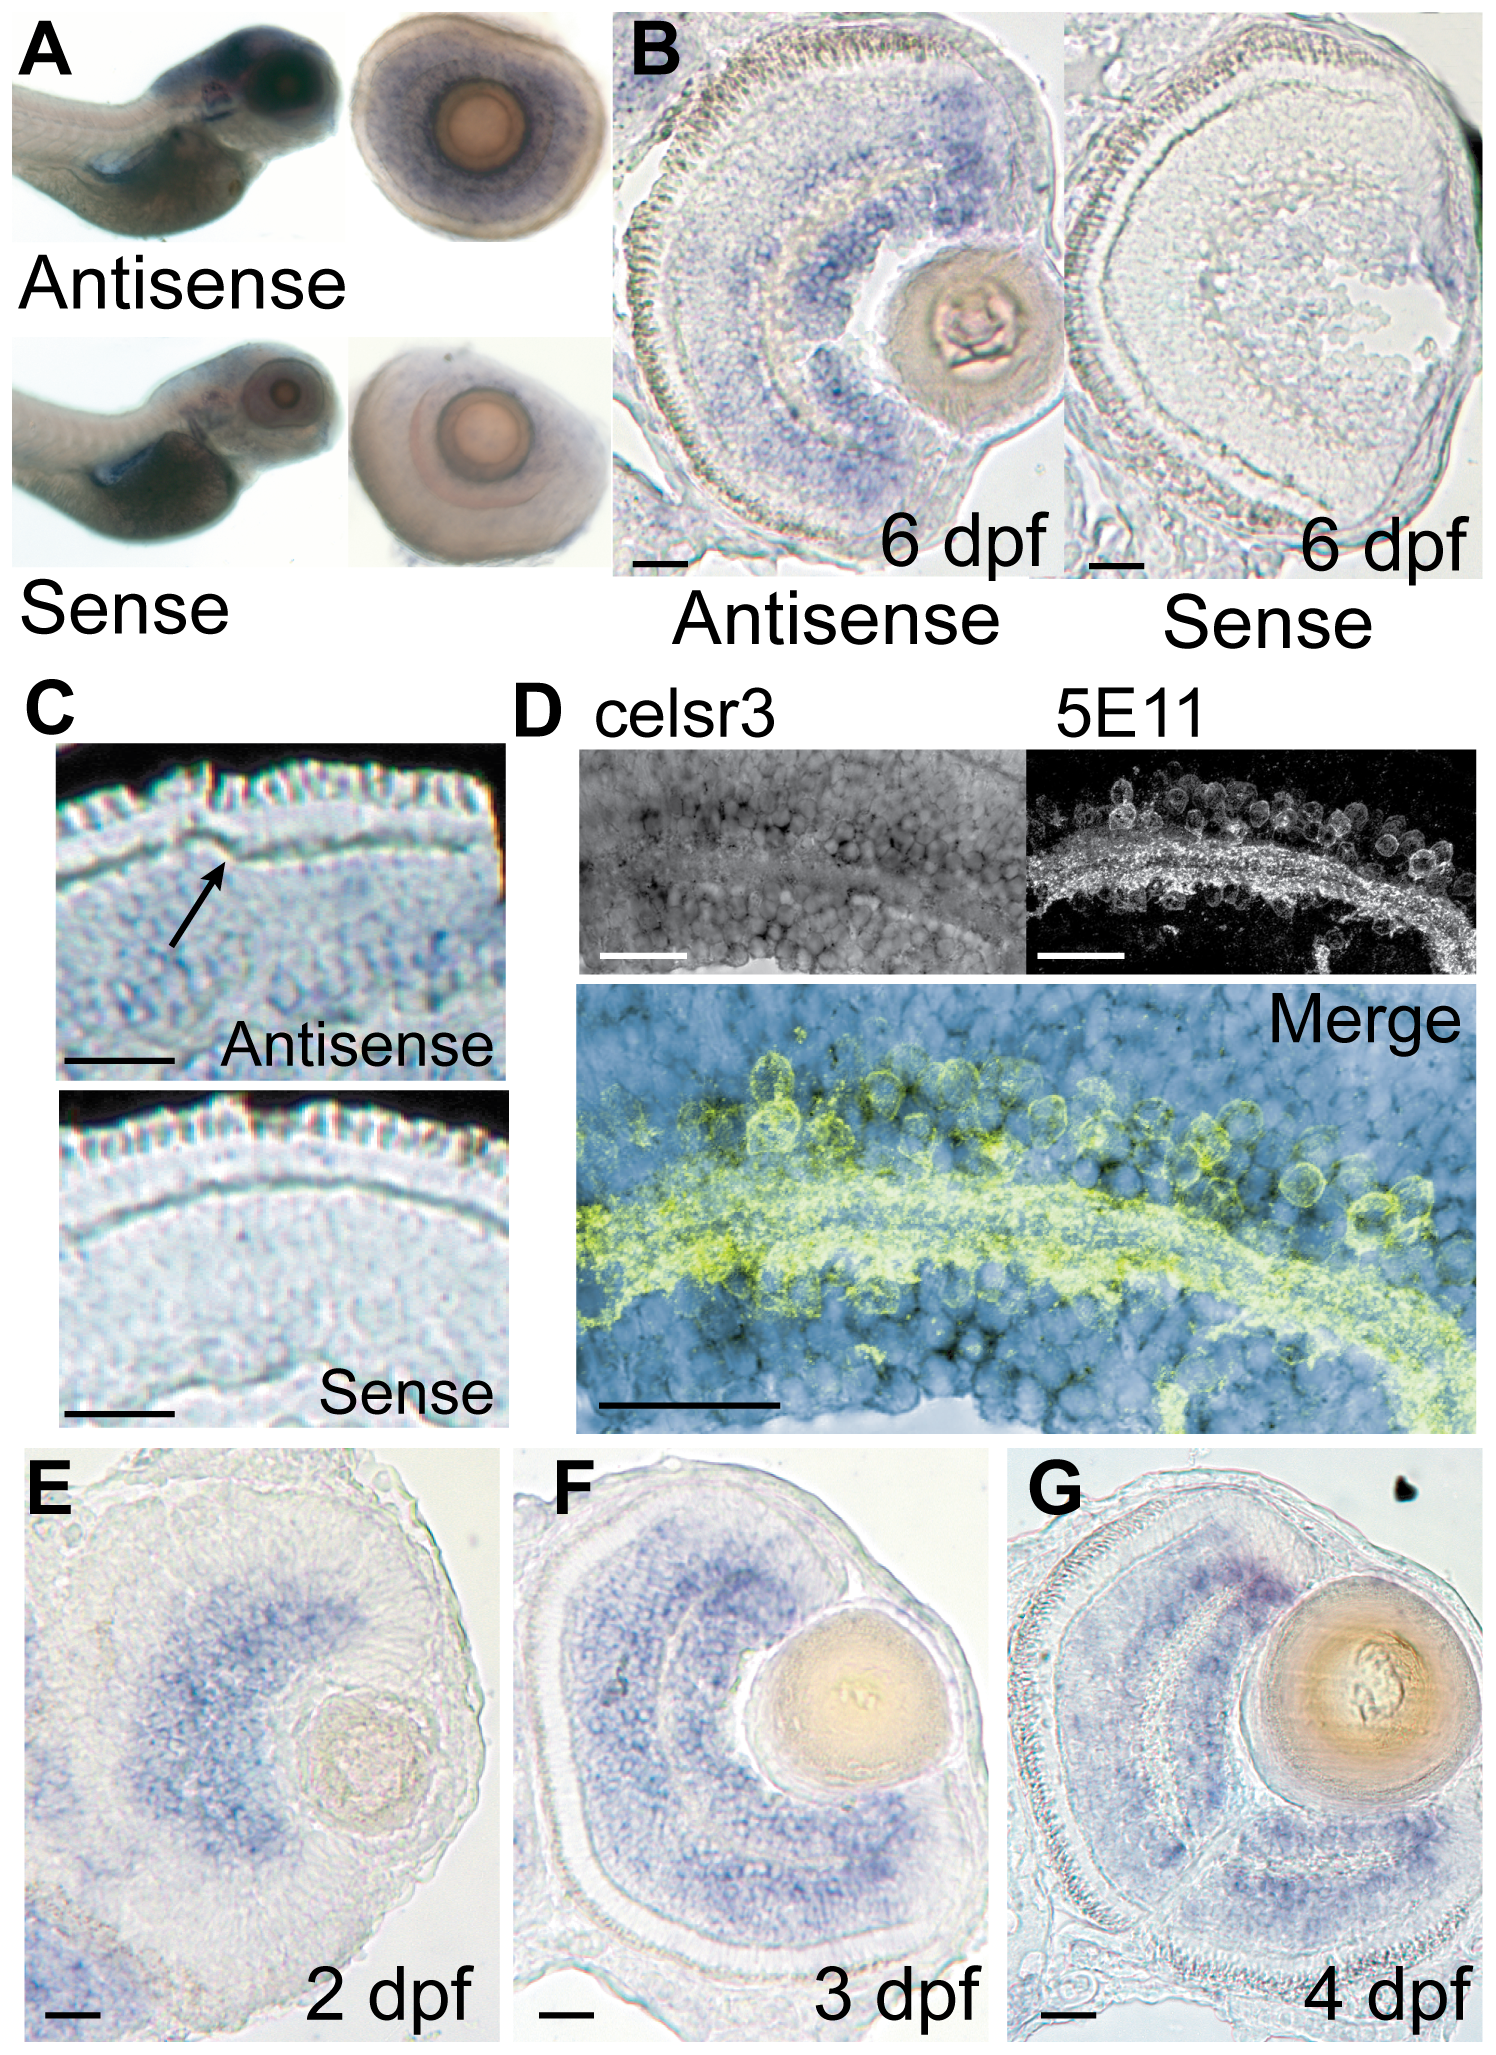 <i>celsr3</i> is abundant within amacrine and ganglion cell layers of the retina.